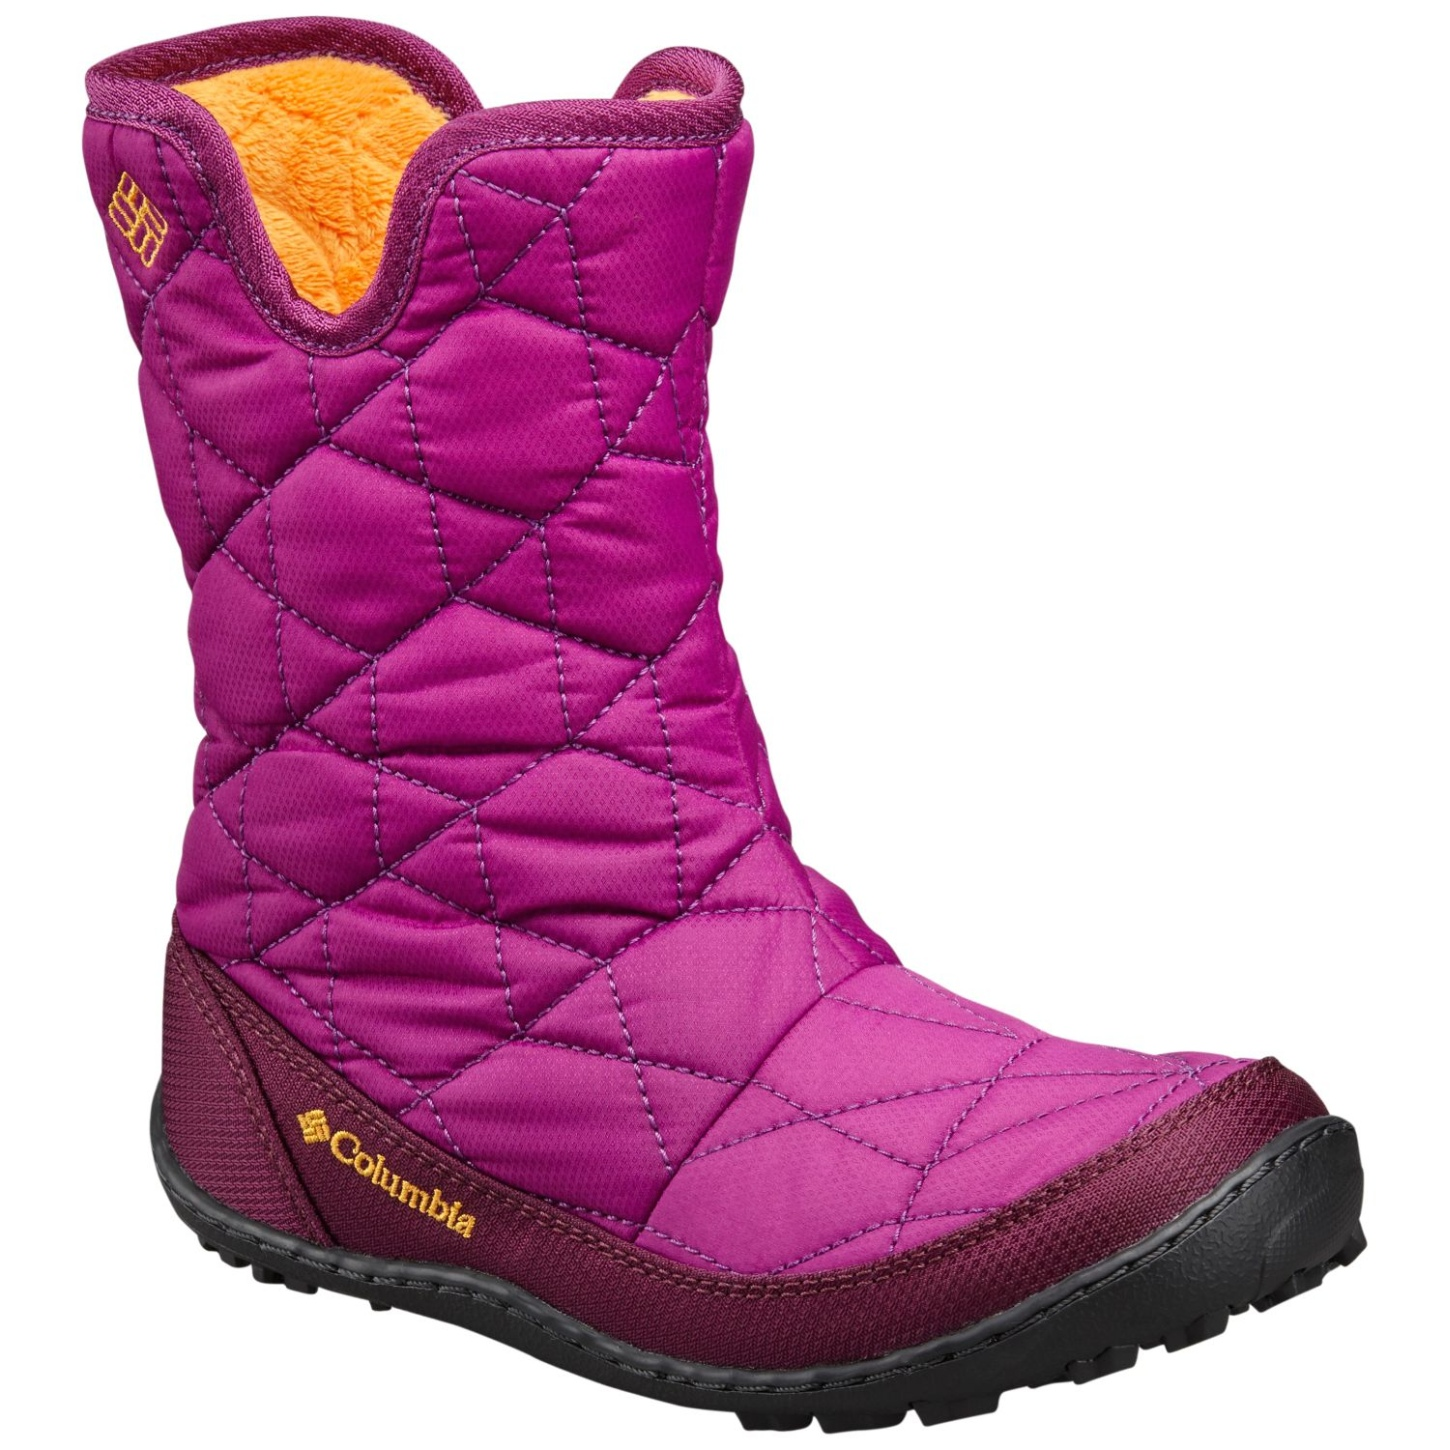 Columbia Girl's Minx Slip Omni-Heat Waterproof Snow Boots Intense Violet, Flame Orange-30